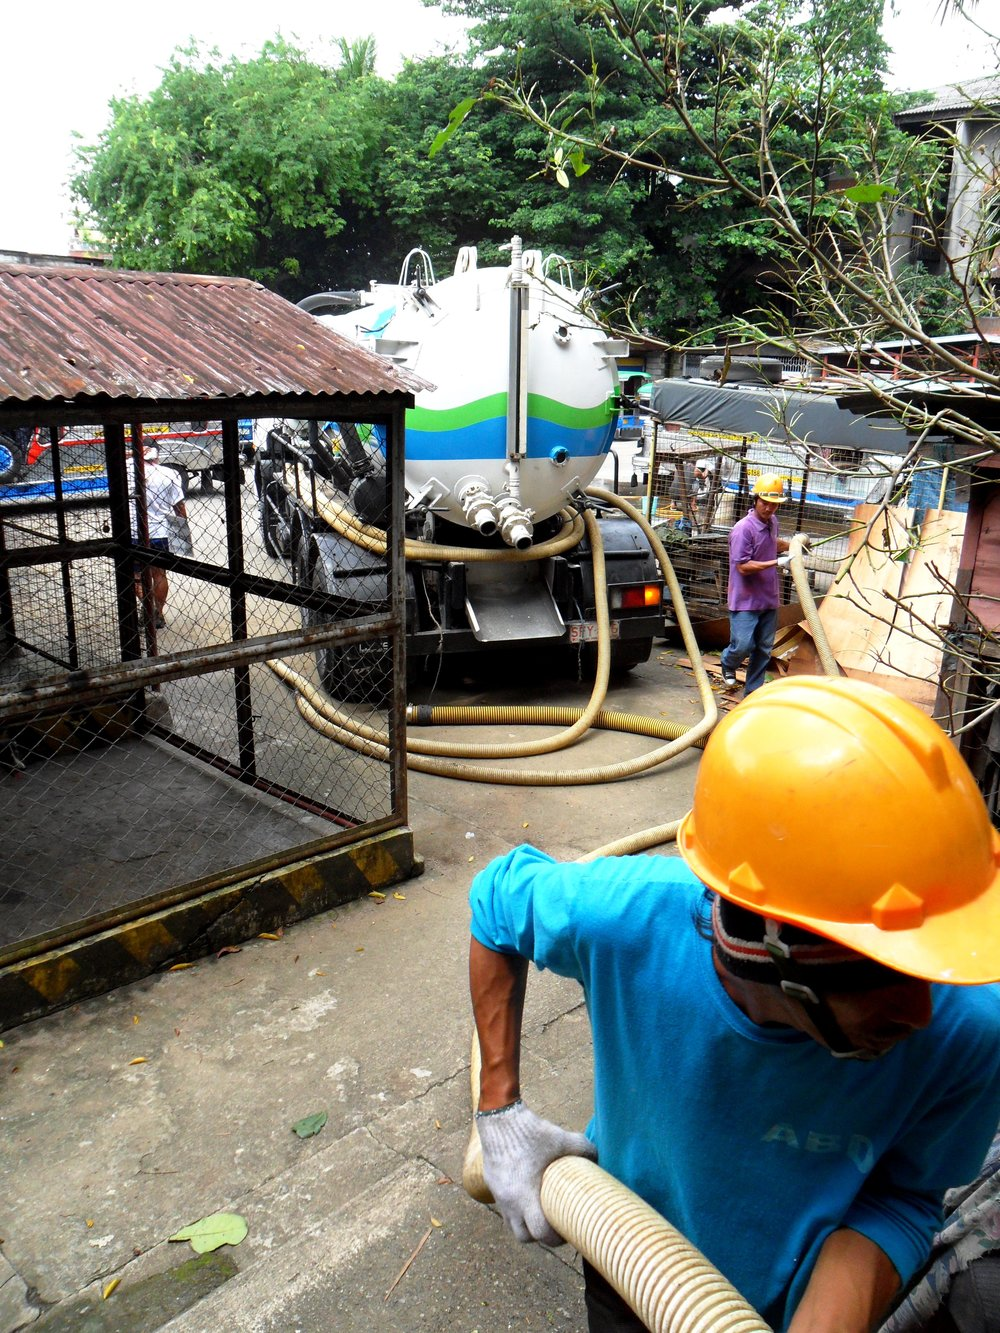 A septic tank is being emptyied. Photo credit: Julian Doczi, Creative Commons Attribution